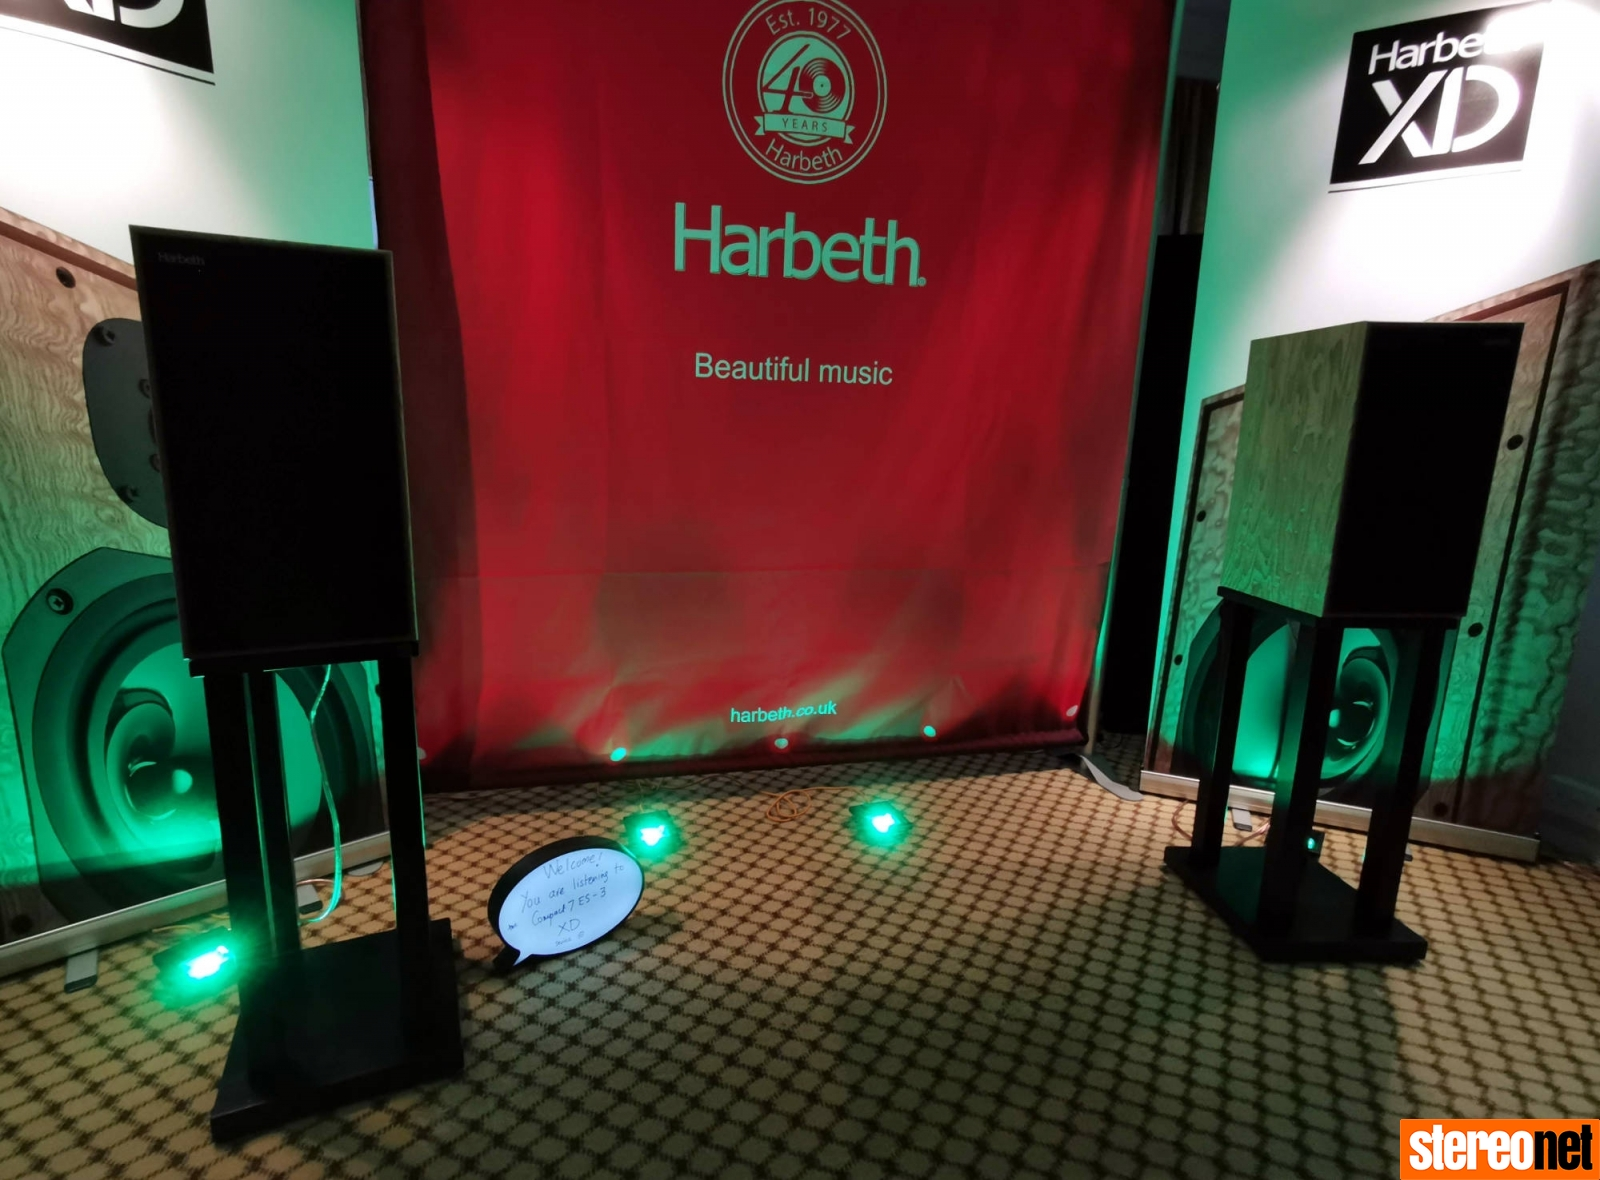 Harbeth XD Bristol hifi show 2020 report